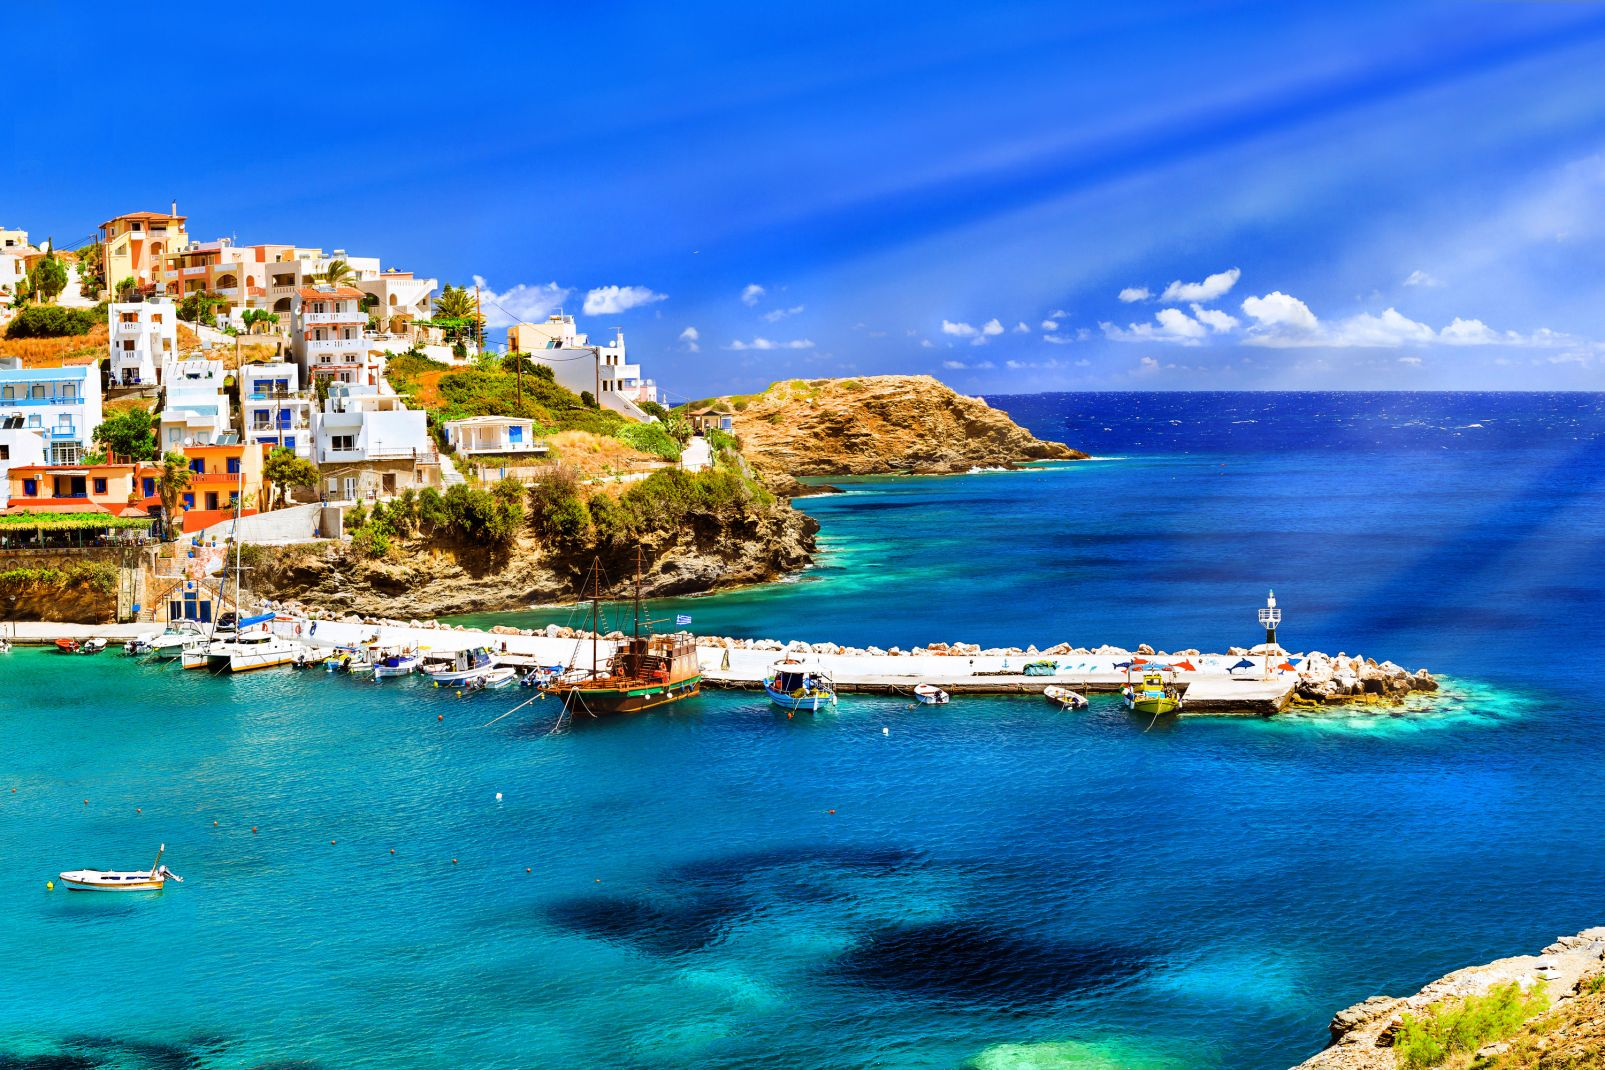 Travel to Crete - Discover Crete with Easyvoyage